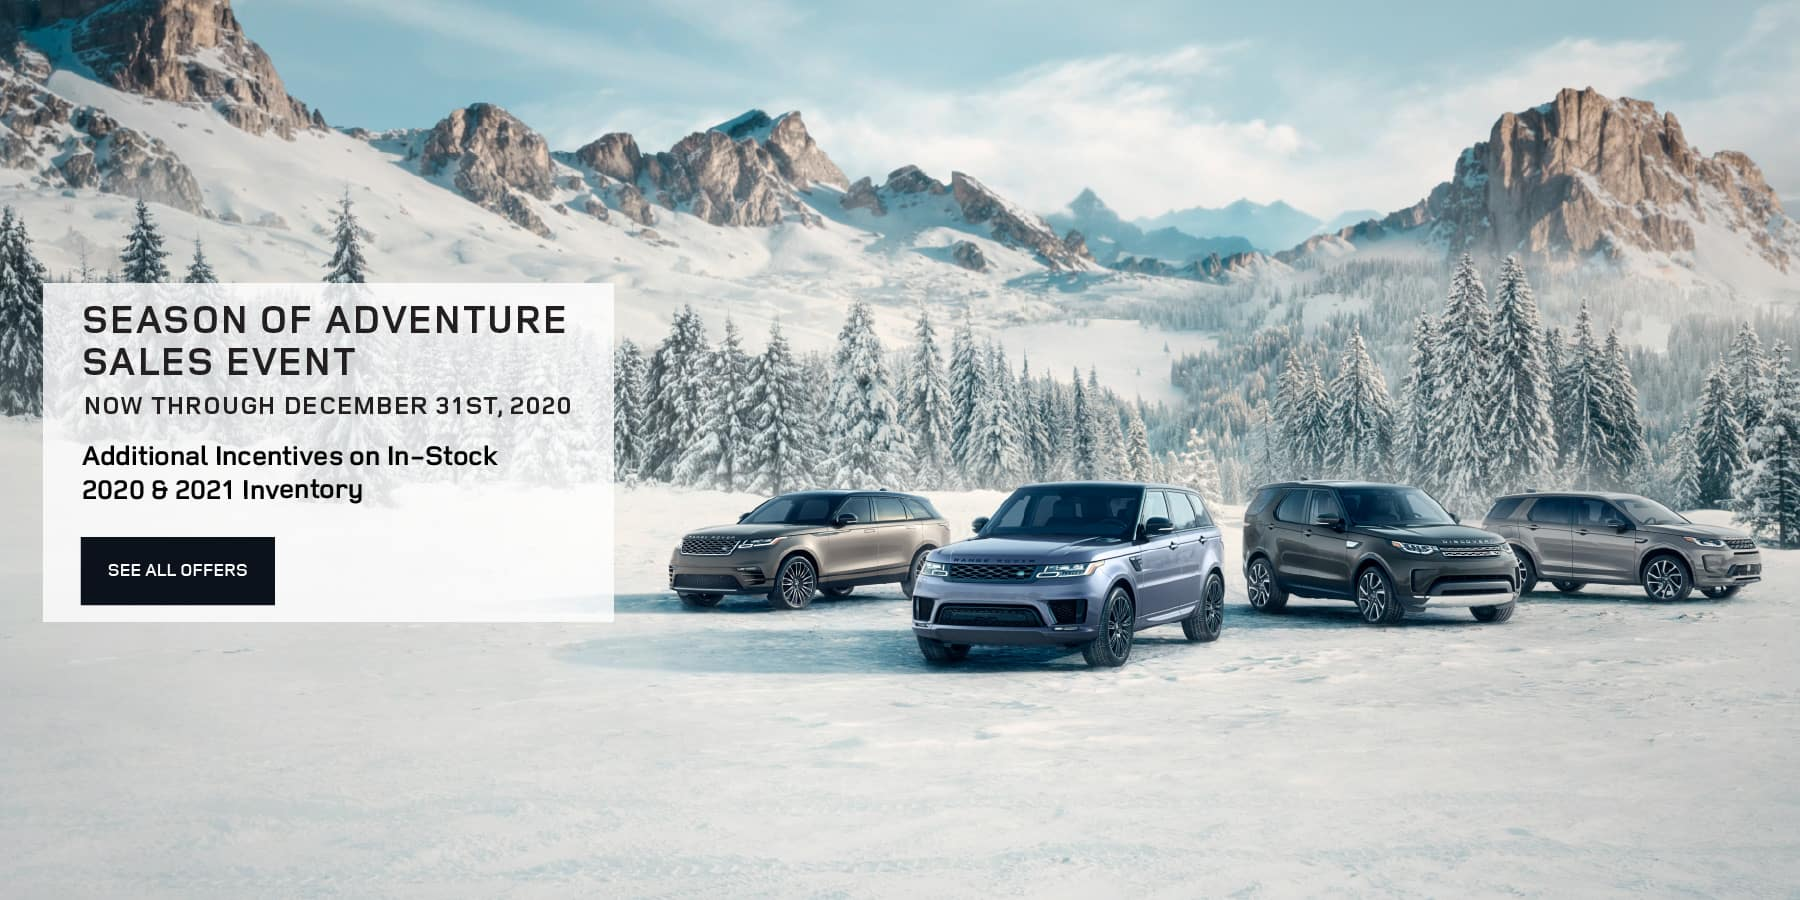 Autobahn Land Rover Fort Worth | Season of Adventure Sales Event